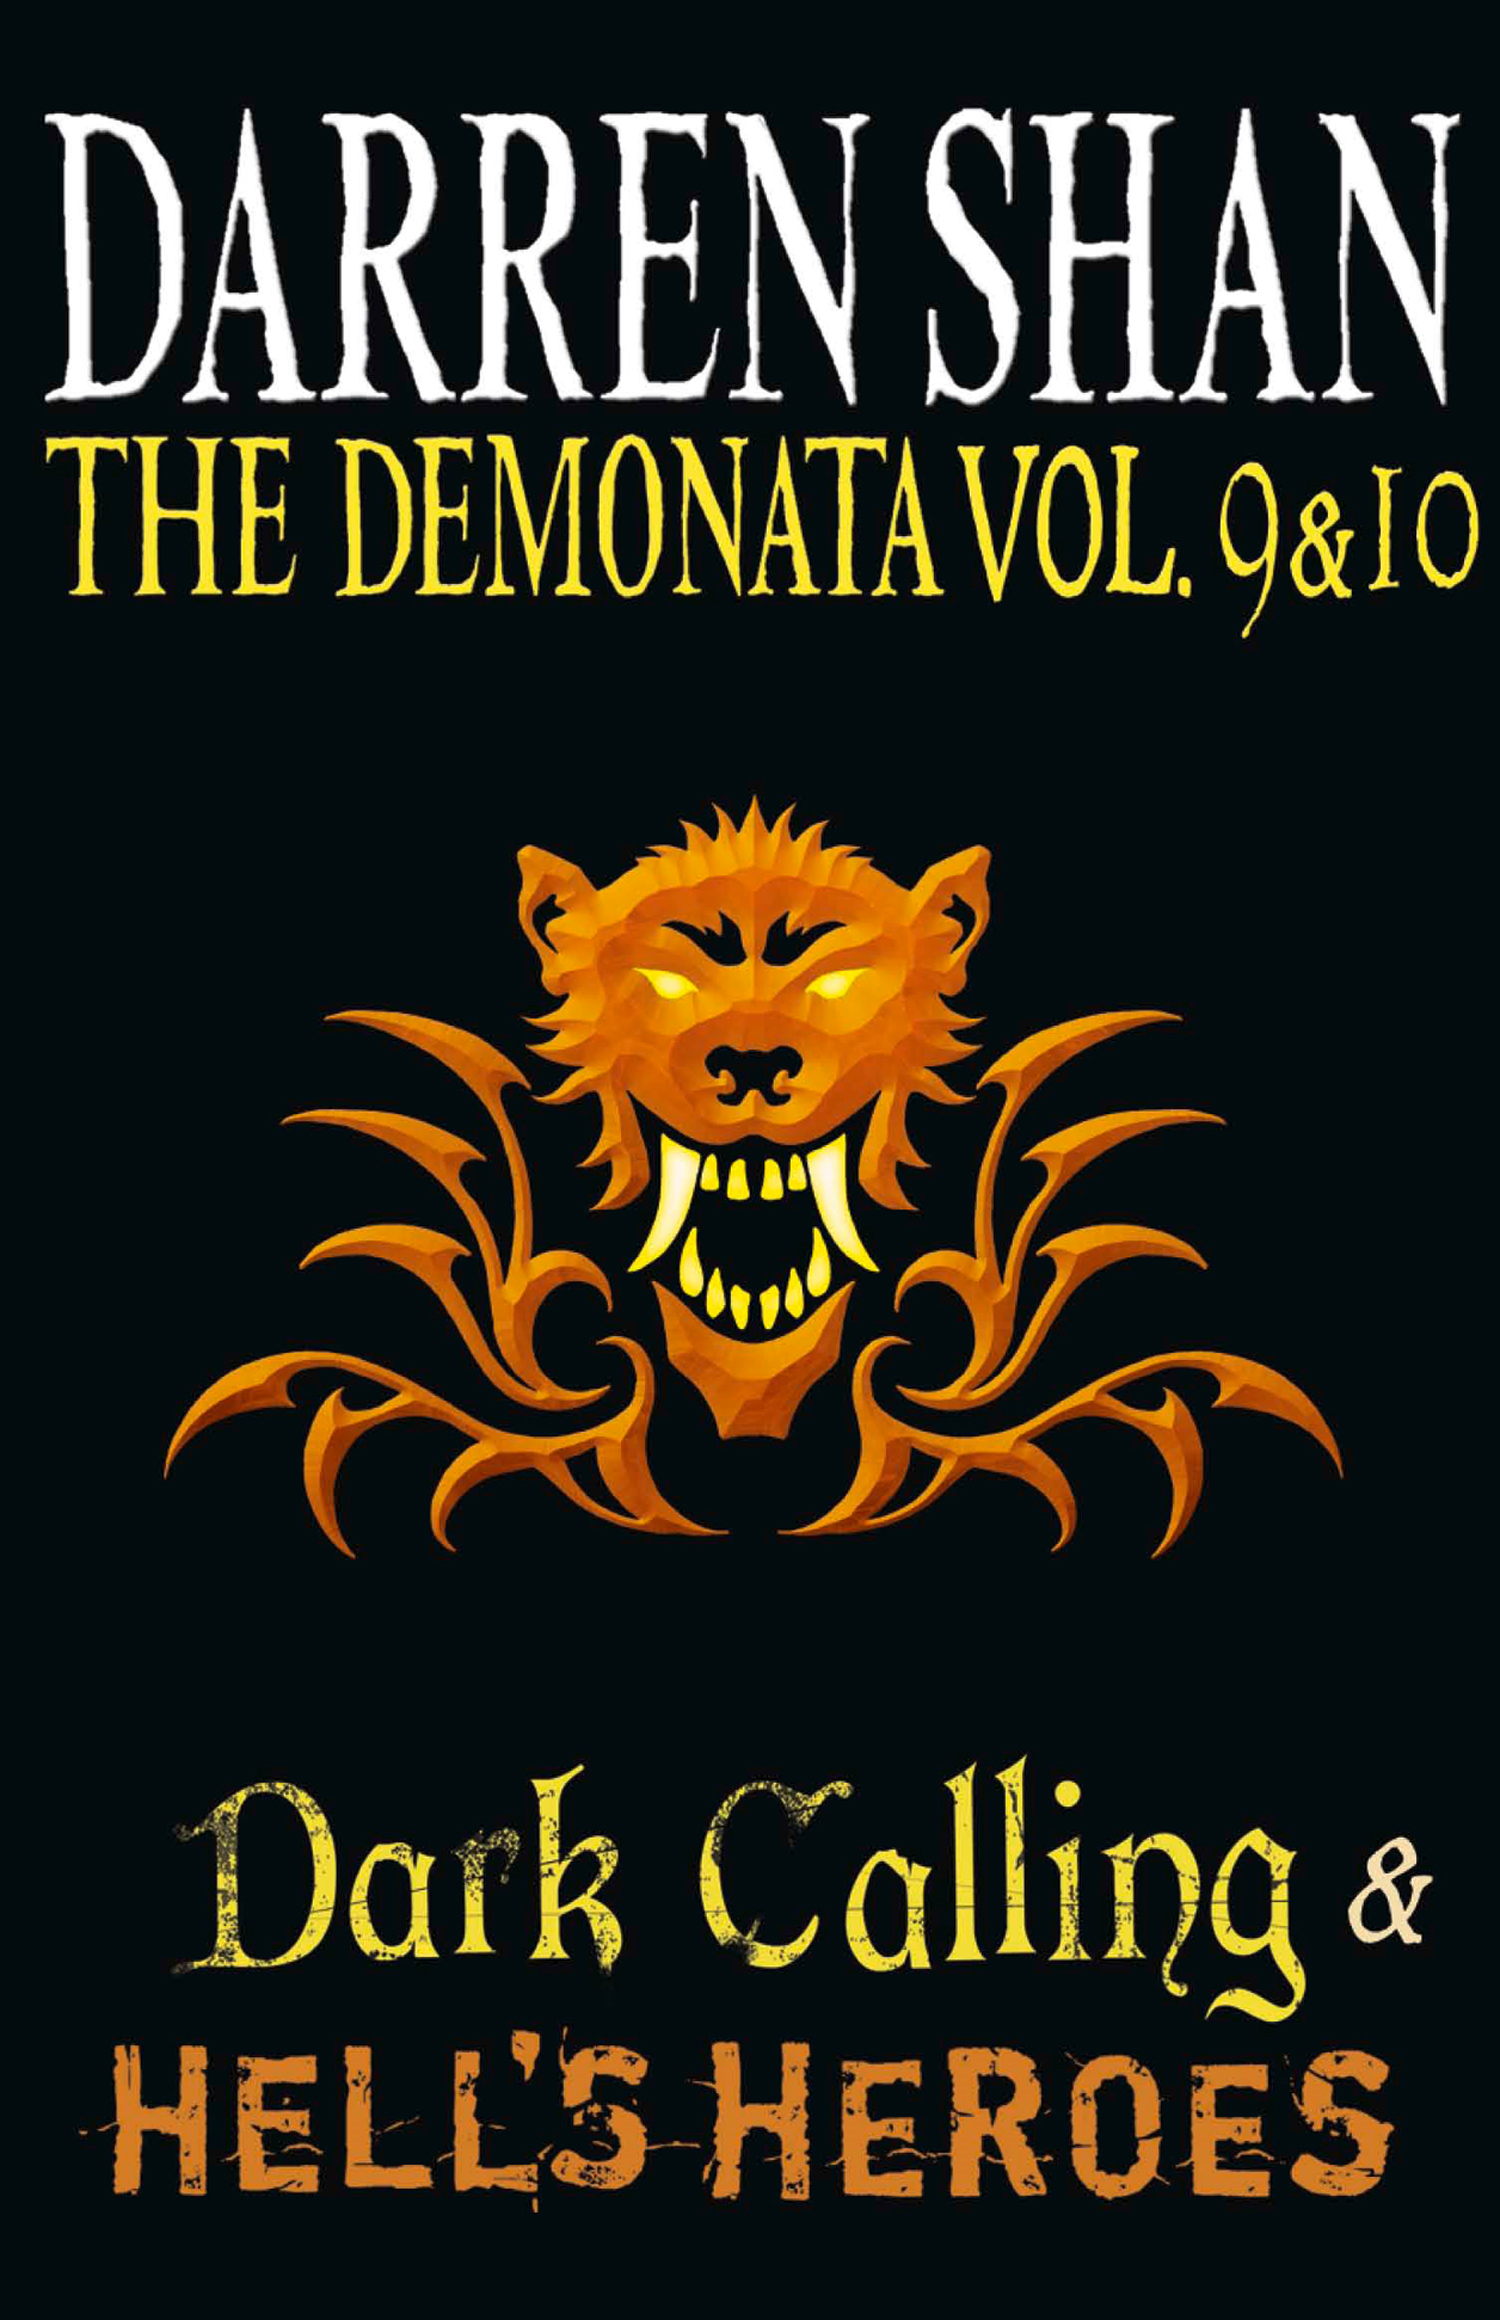 Volumes 9 and 10 - Dark Calling/Hell?s Heroes (The Demonata)